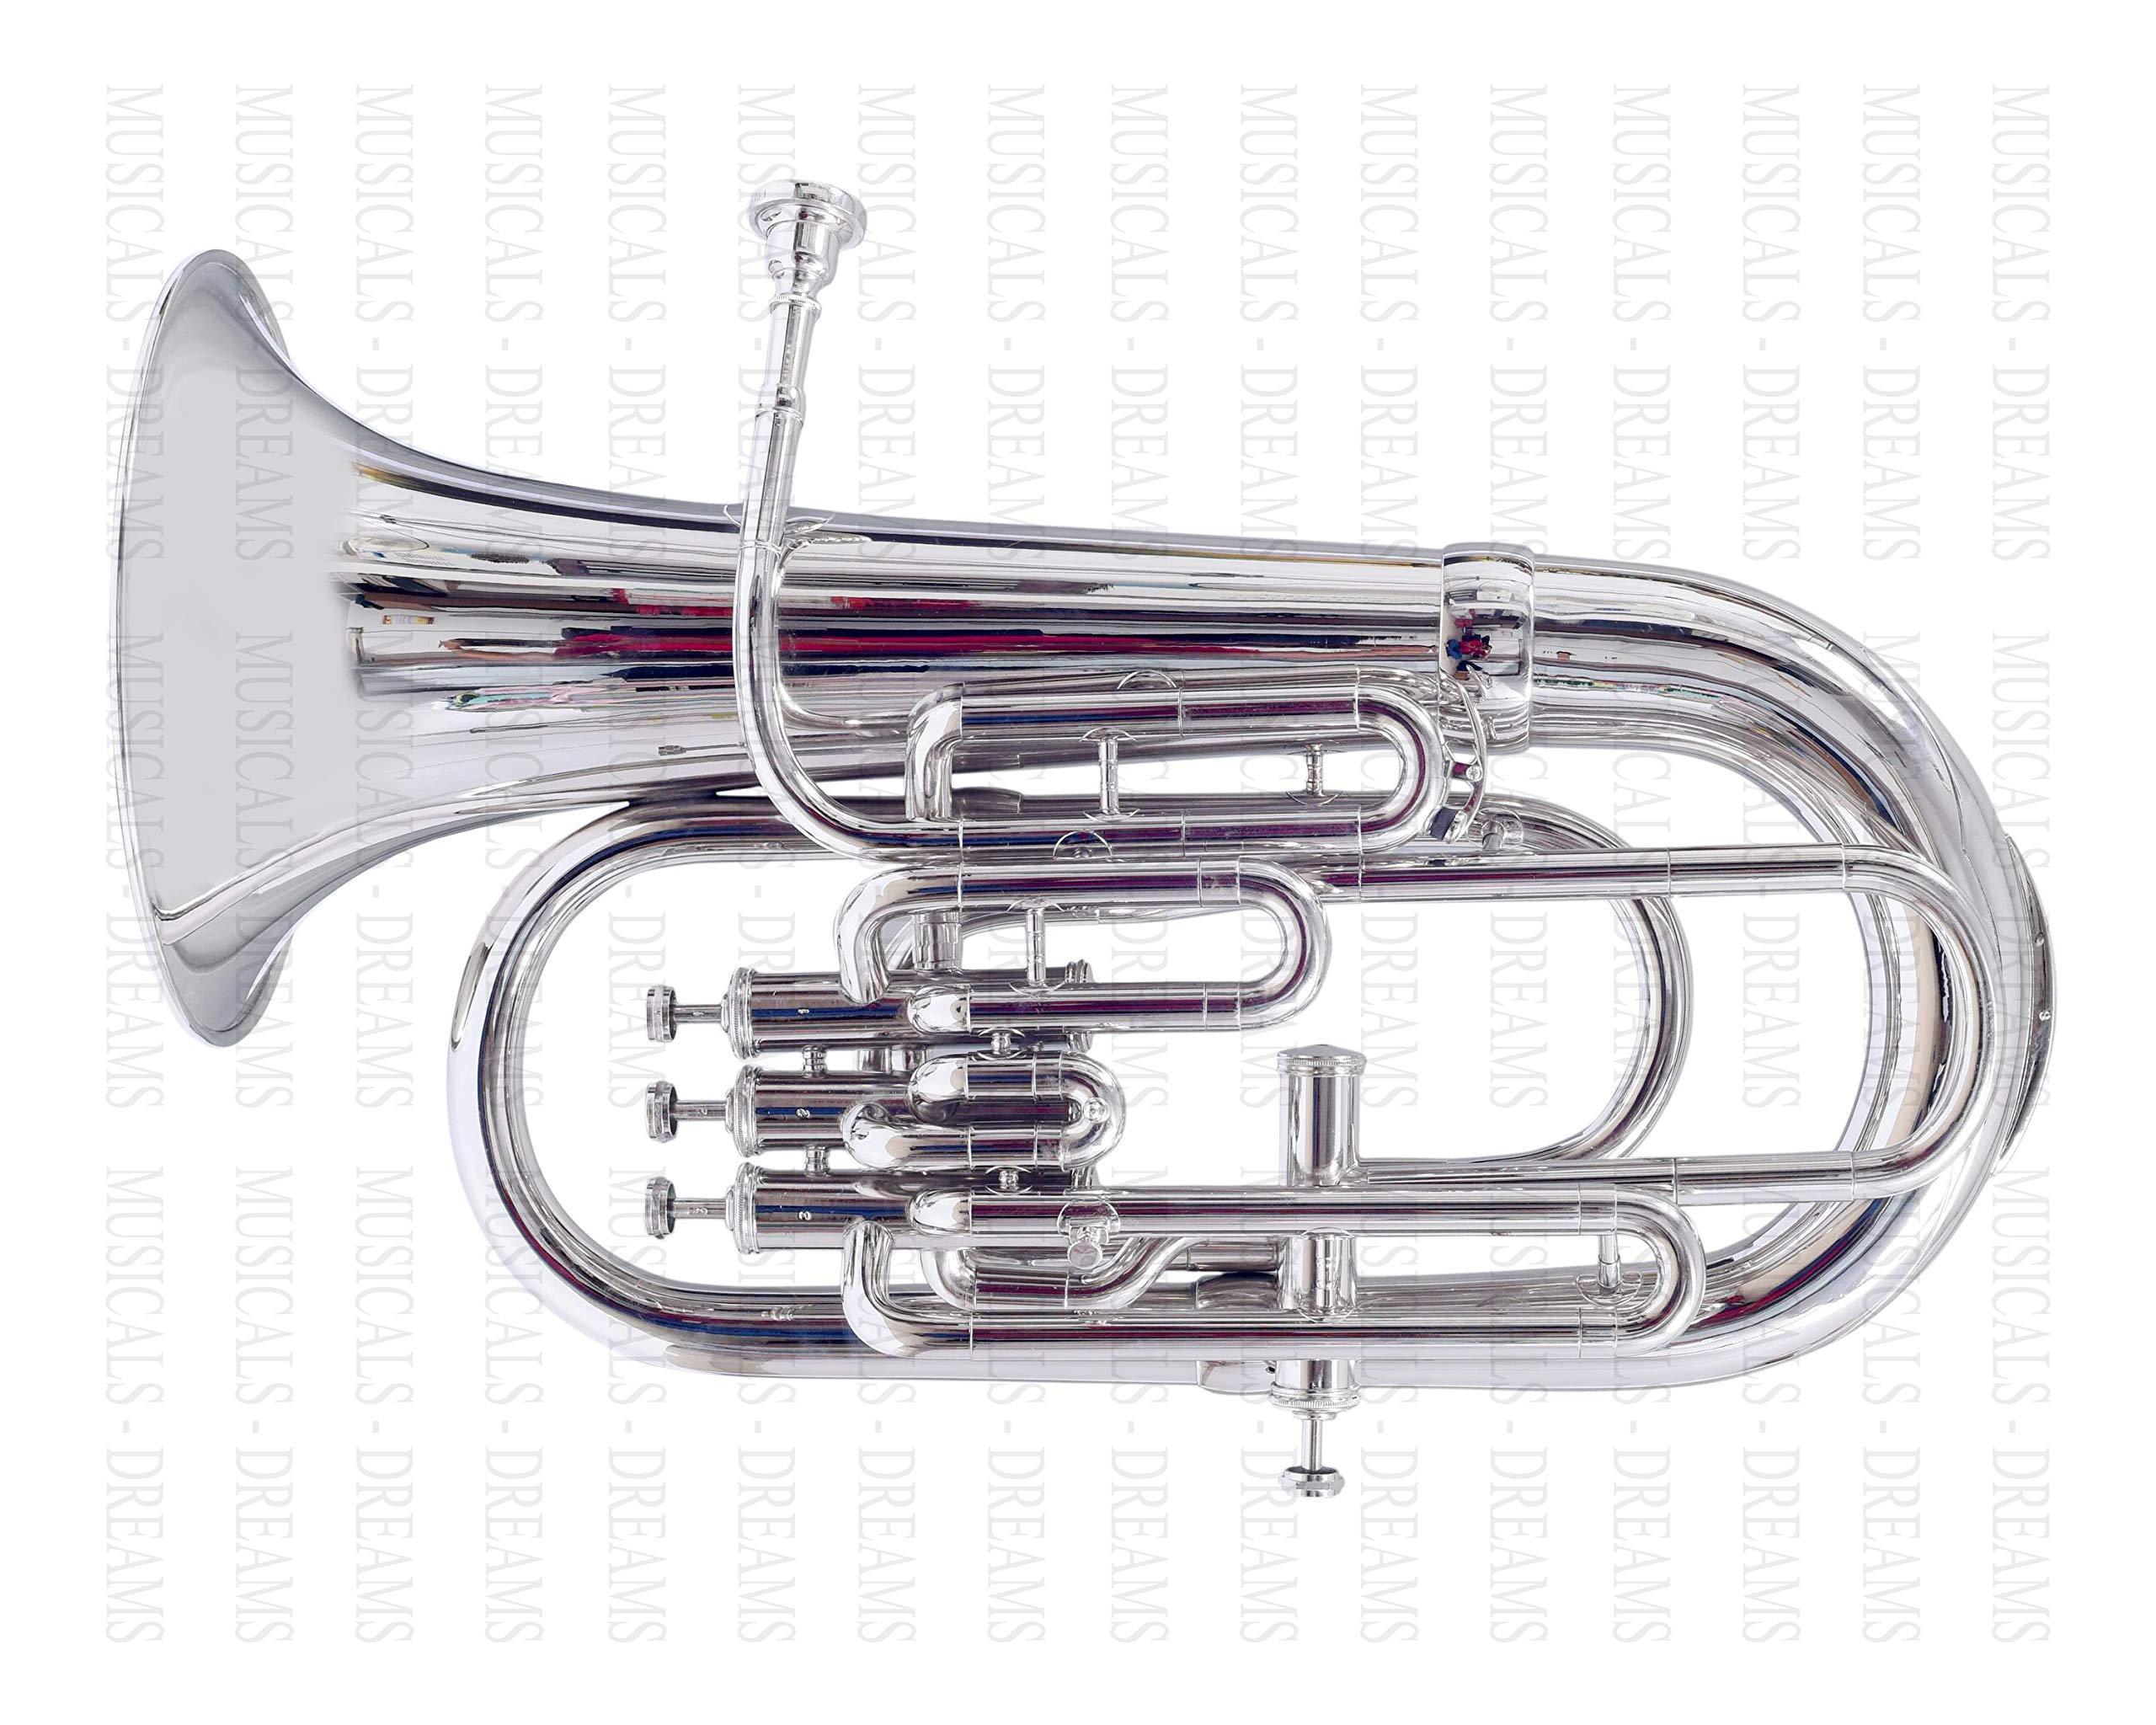 Moonflag Bb Euphonium Nickel 4 Valve by NASIR ALI (Image #3)